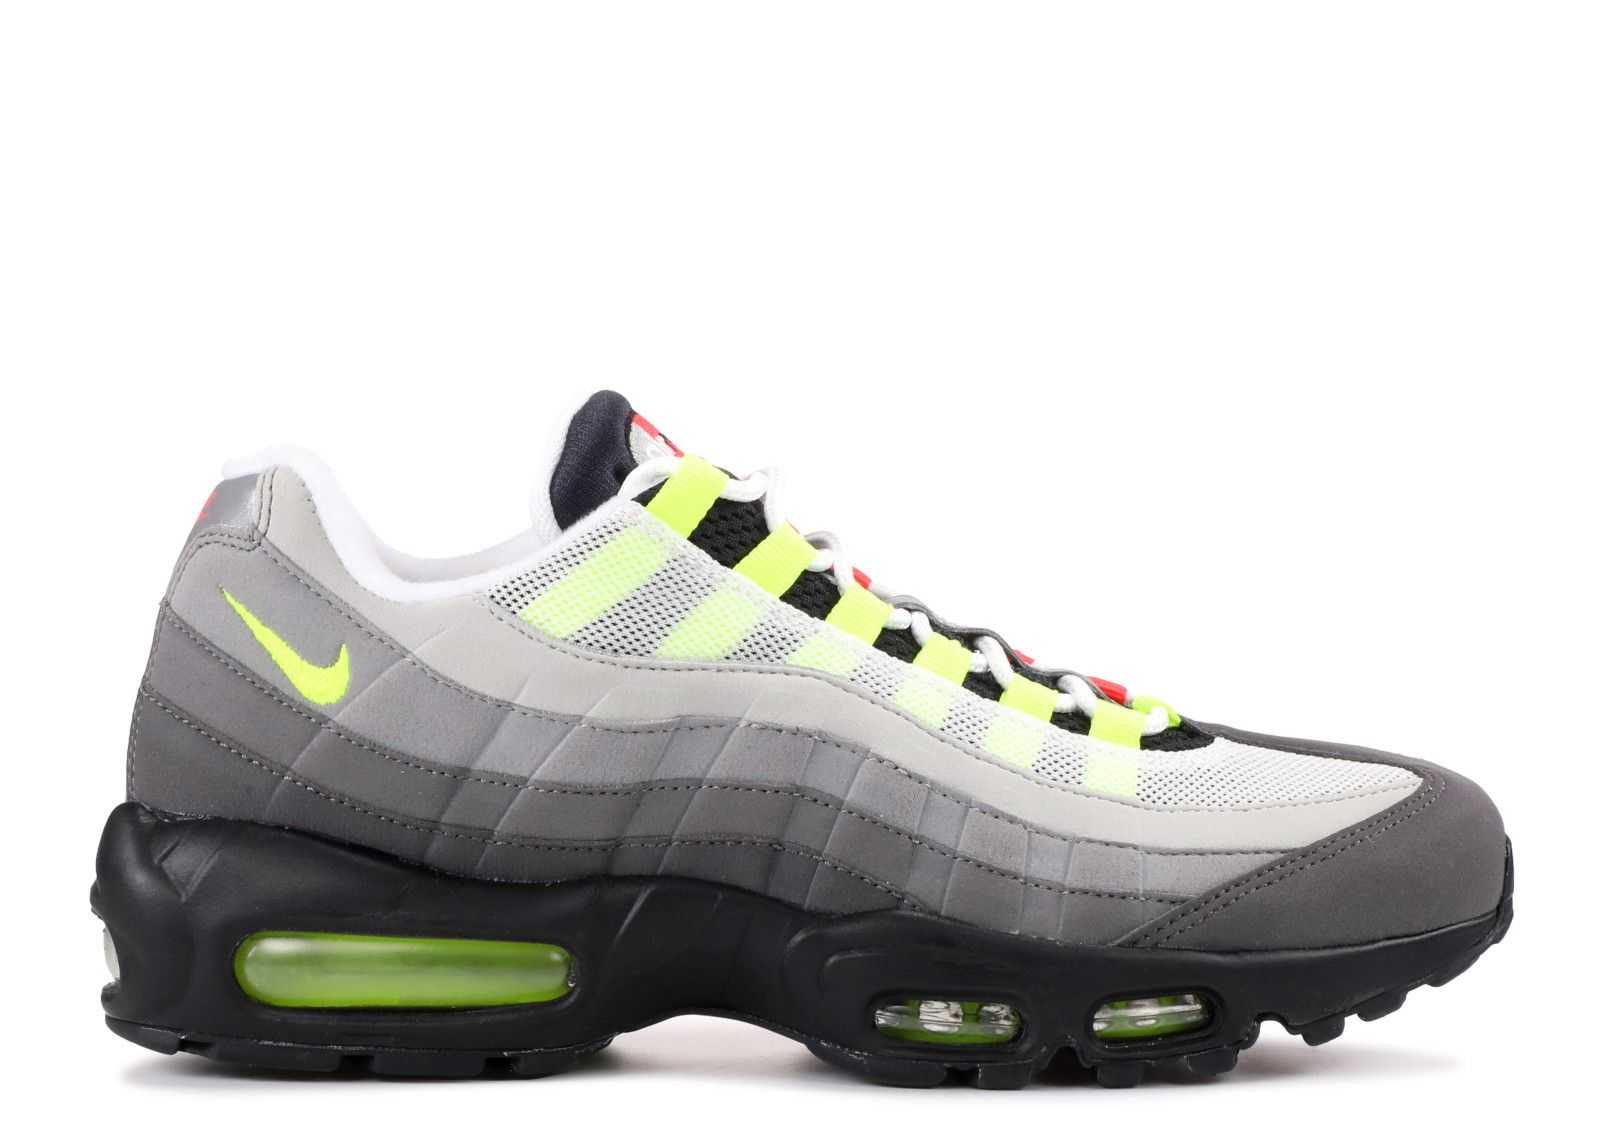 uk availability 6c272 a2fe8 Price Nike Air Max 95 Og Qs